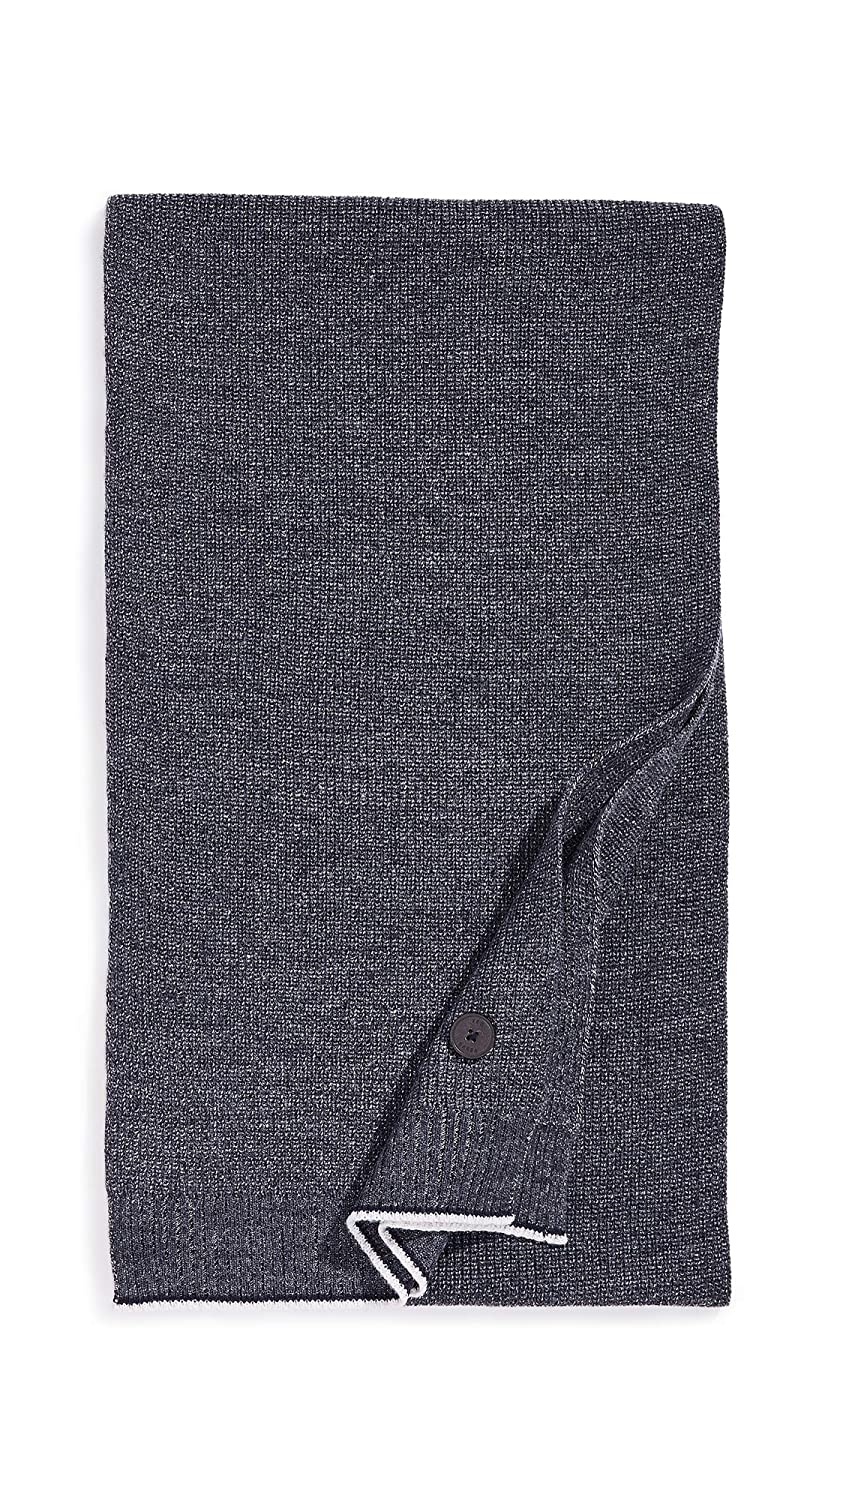 Ted Baker Men's Redscarf Marled Scarf Grey One Size Ted Baker-Men' s